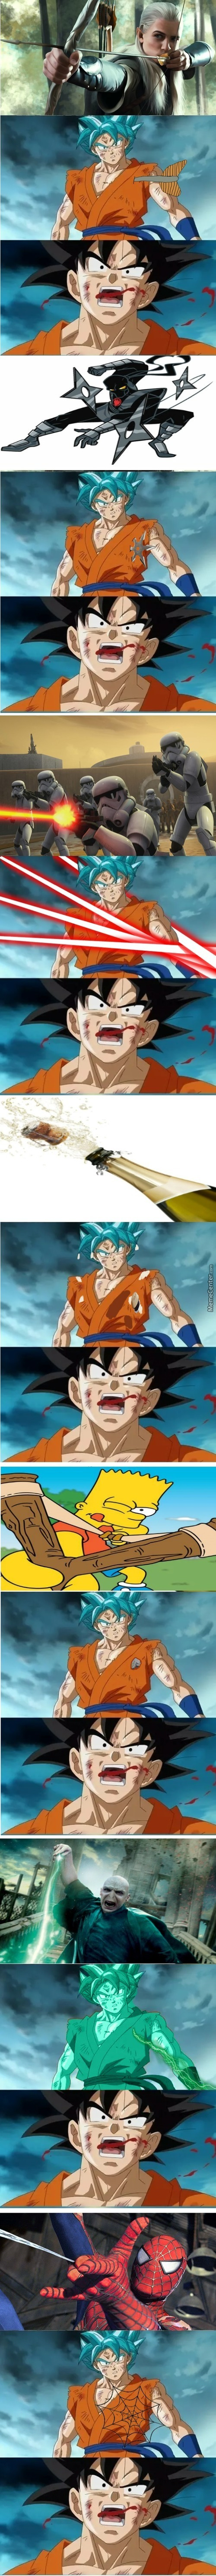 Goku Died More Than Kenny